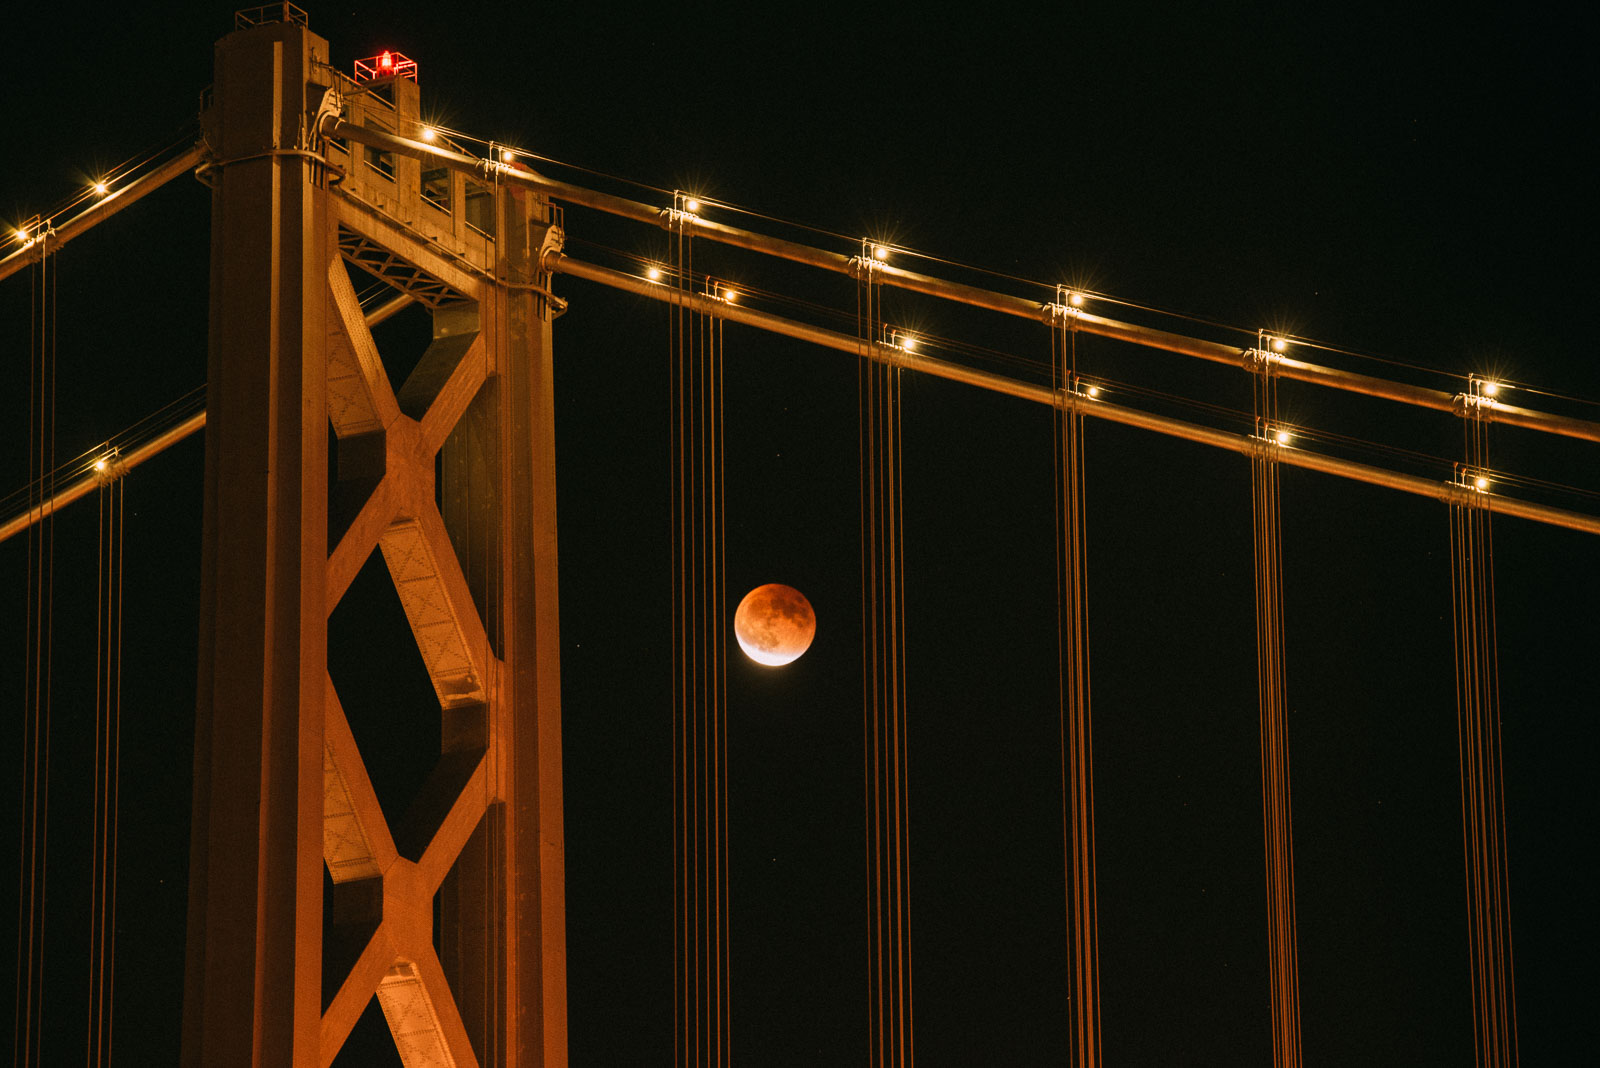 Supermoon Lunar Eclipse from Bay Bridge, California